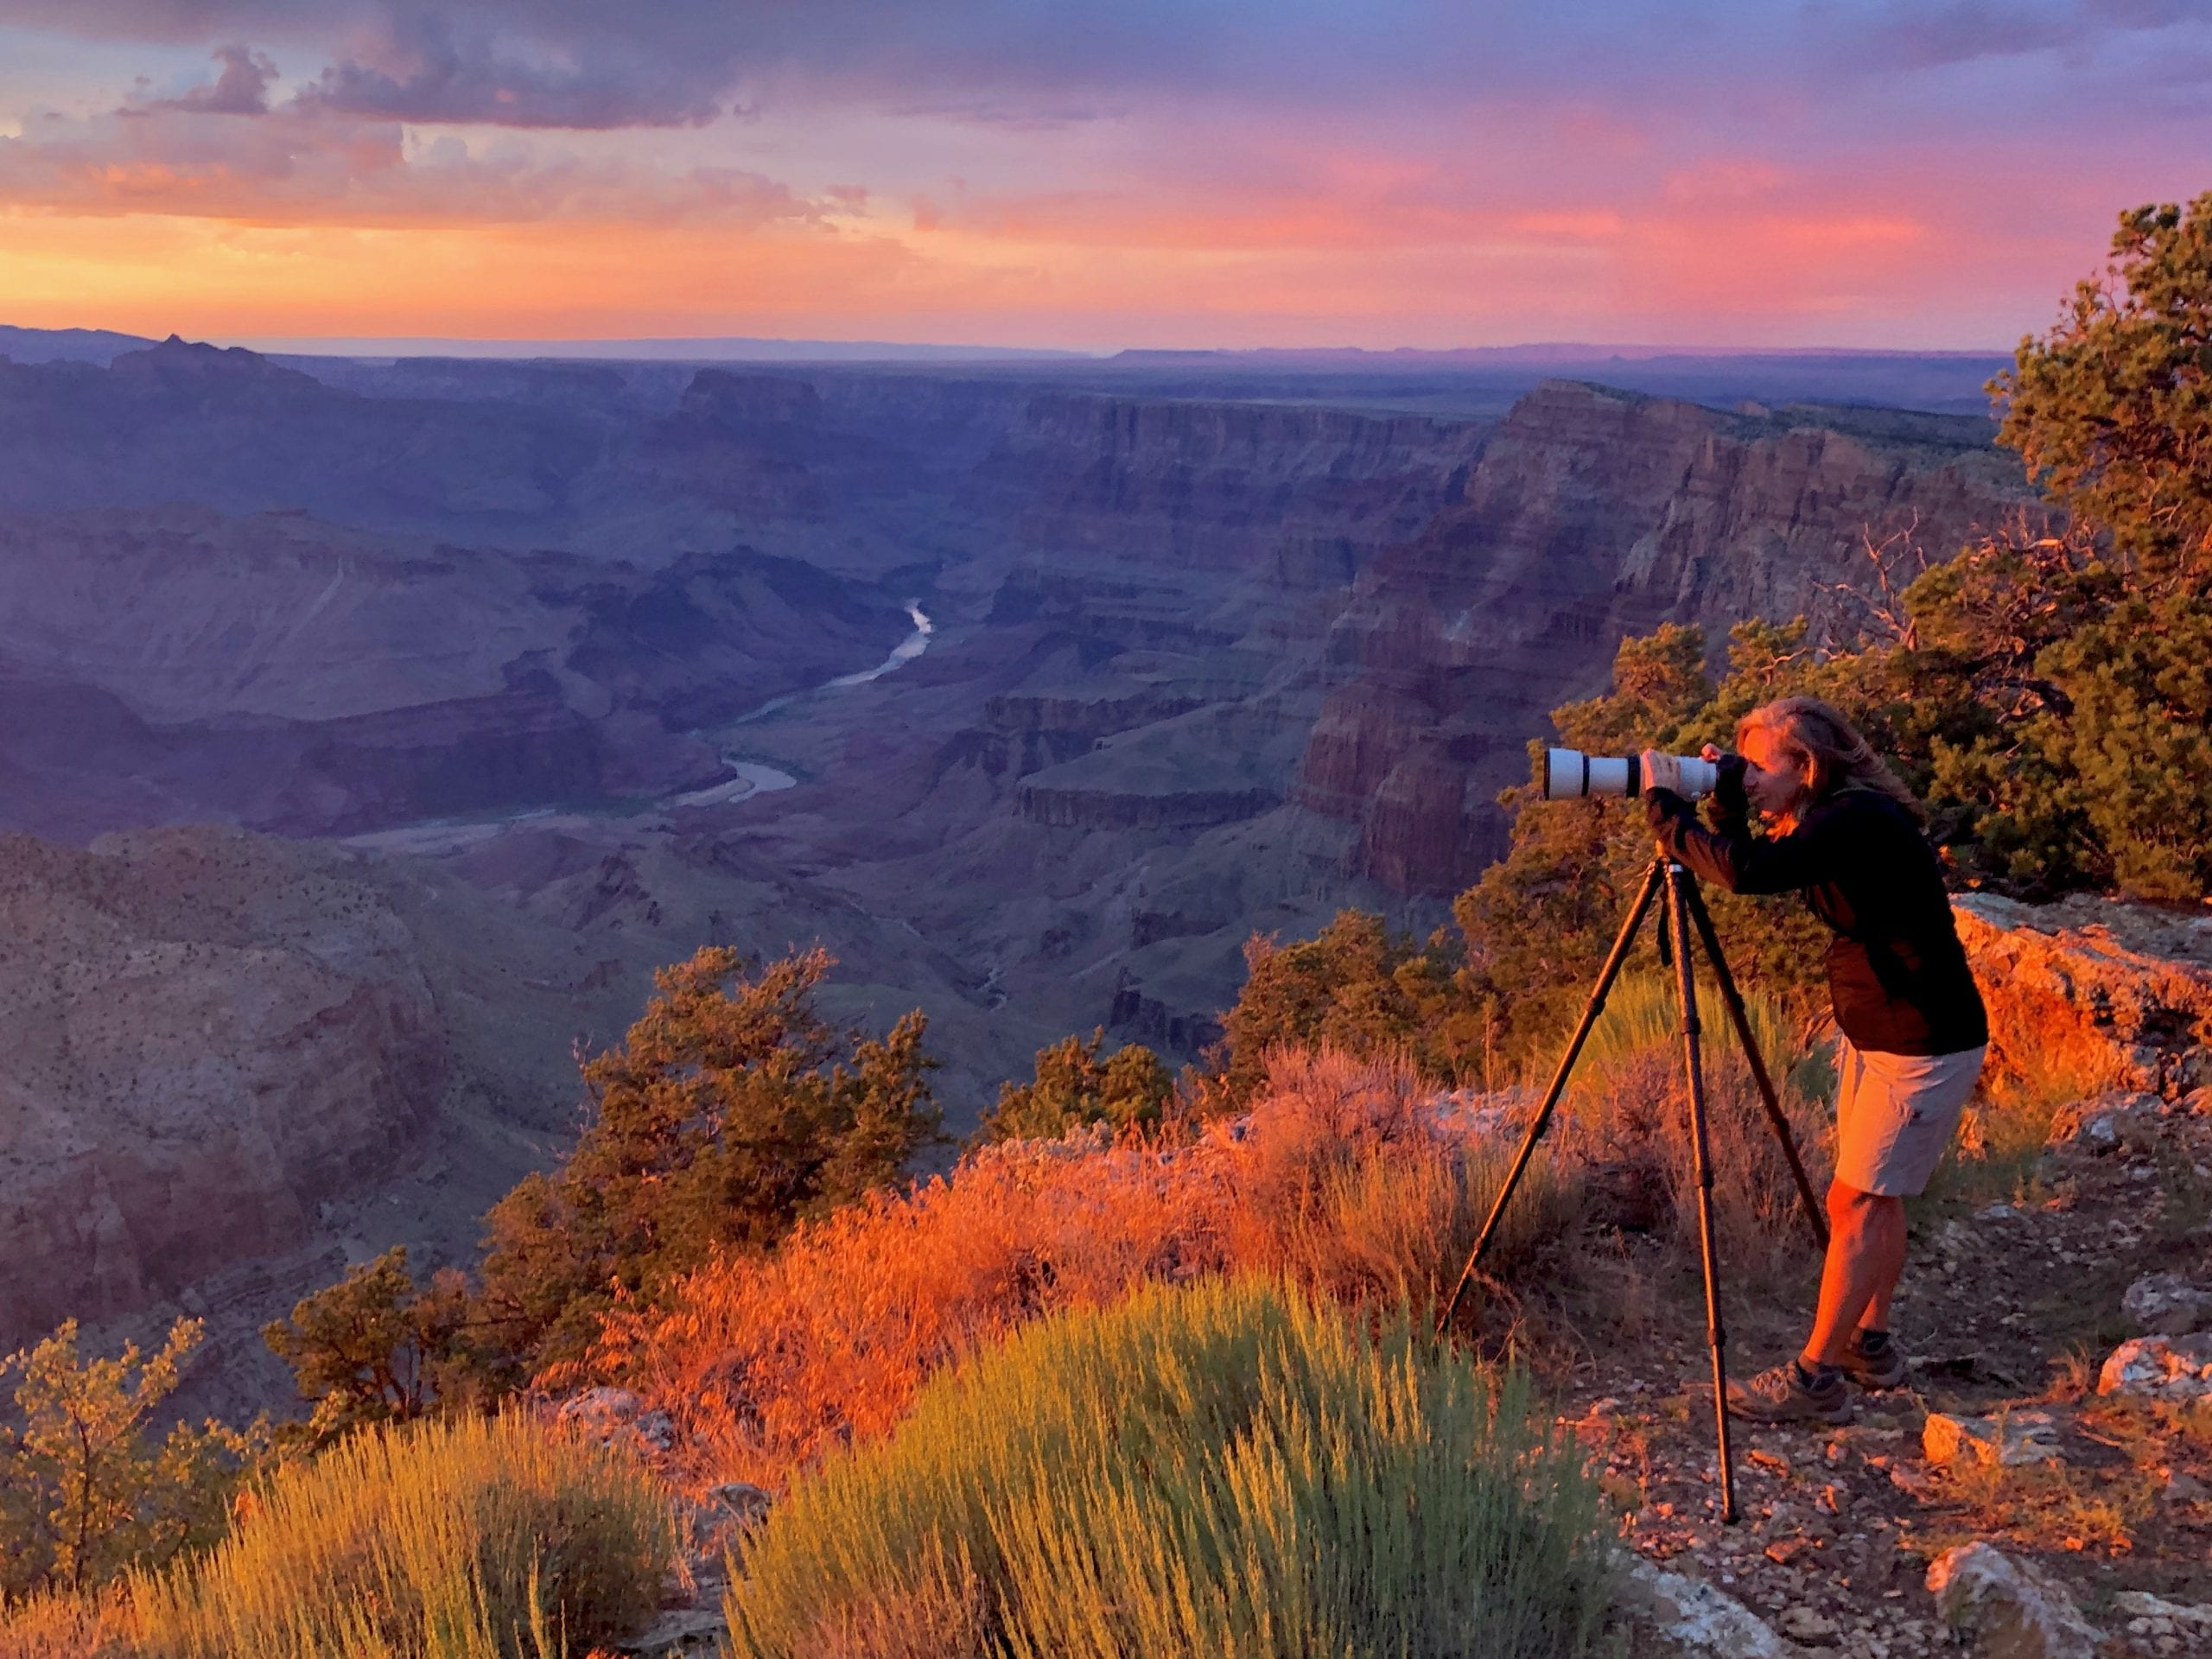 Photographer taking a picture of sunset at the Grand Canyon.